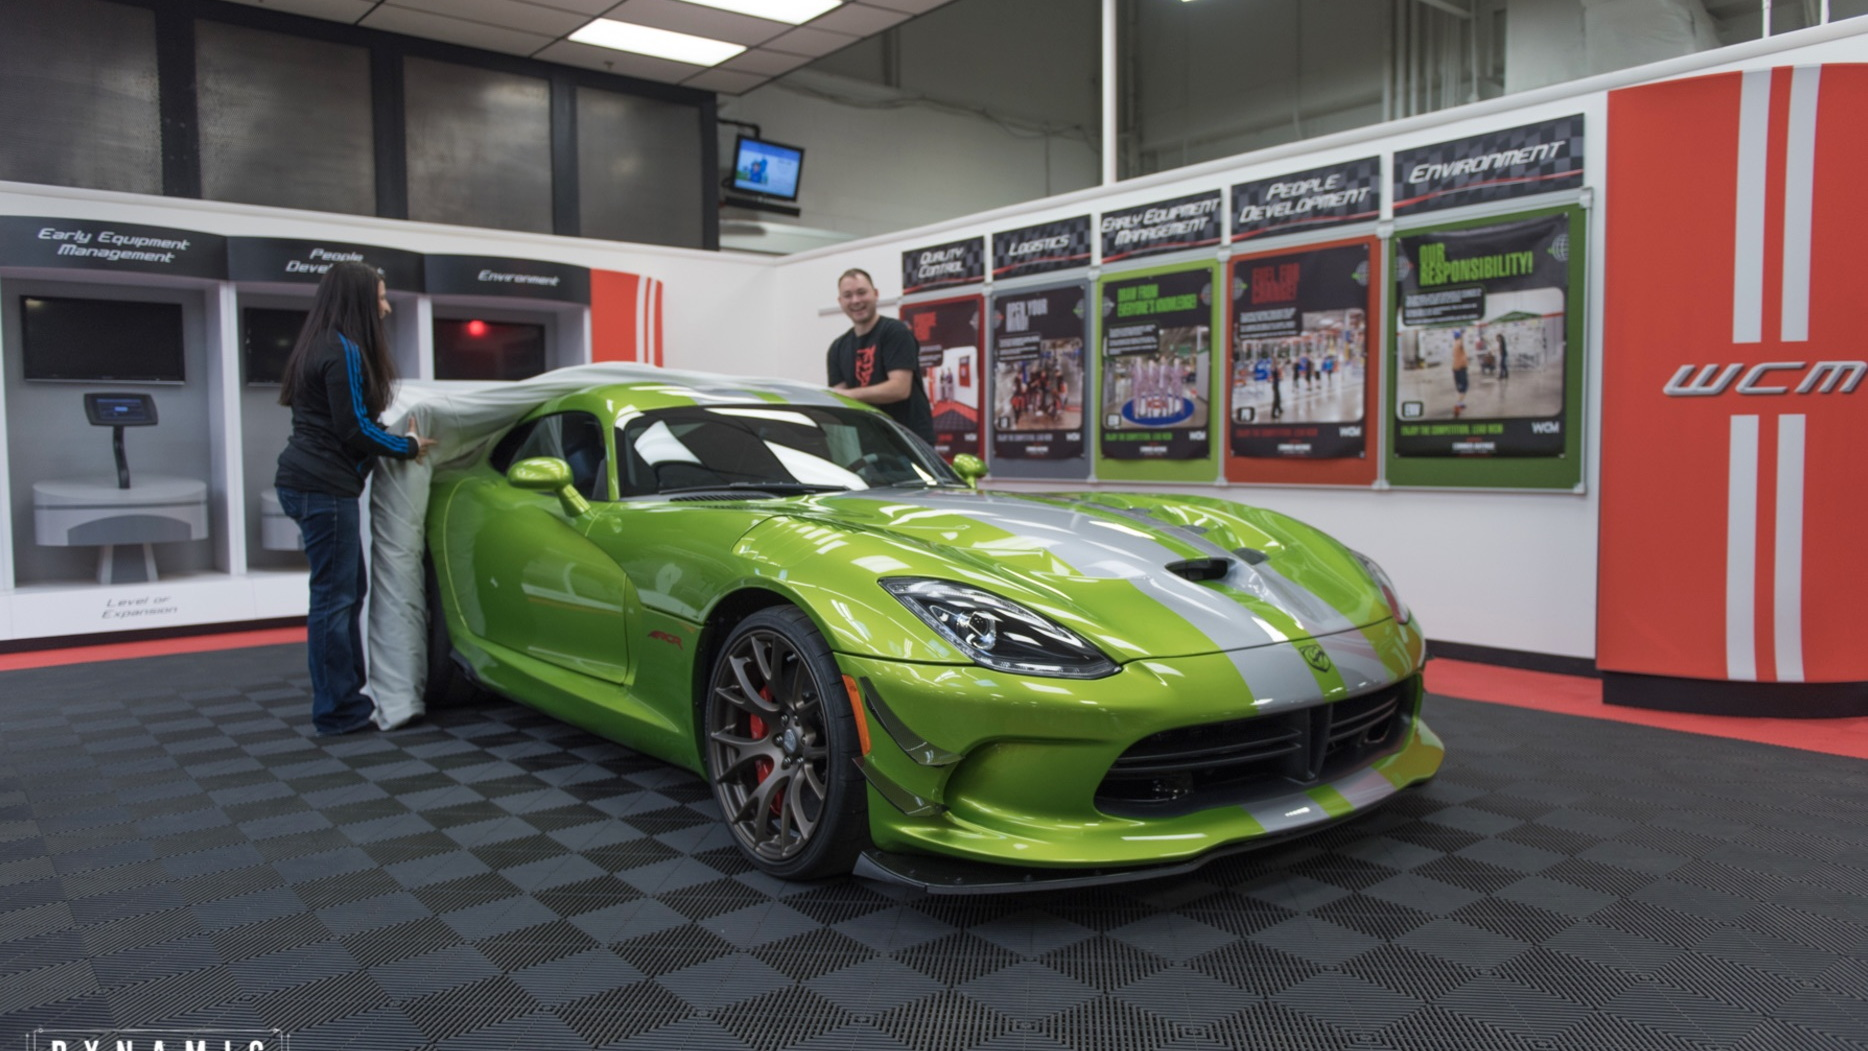 Largest 5th Gen Dodge Viper Customer Delivery Photo By Dynamic Photowerks